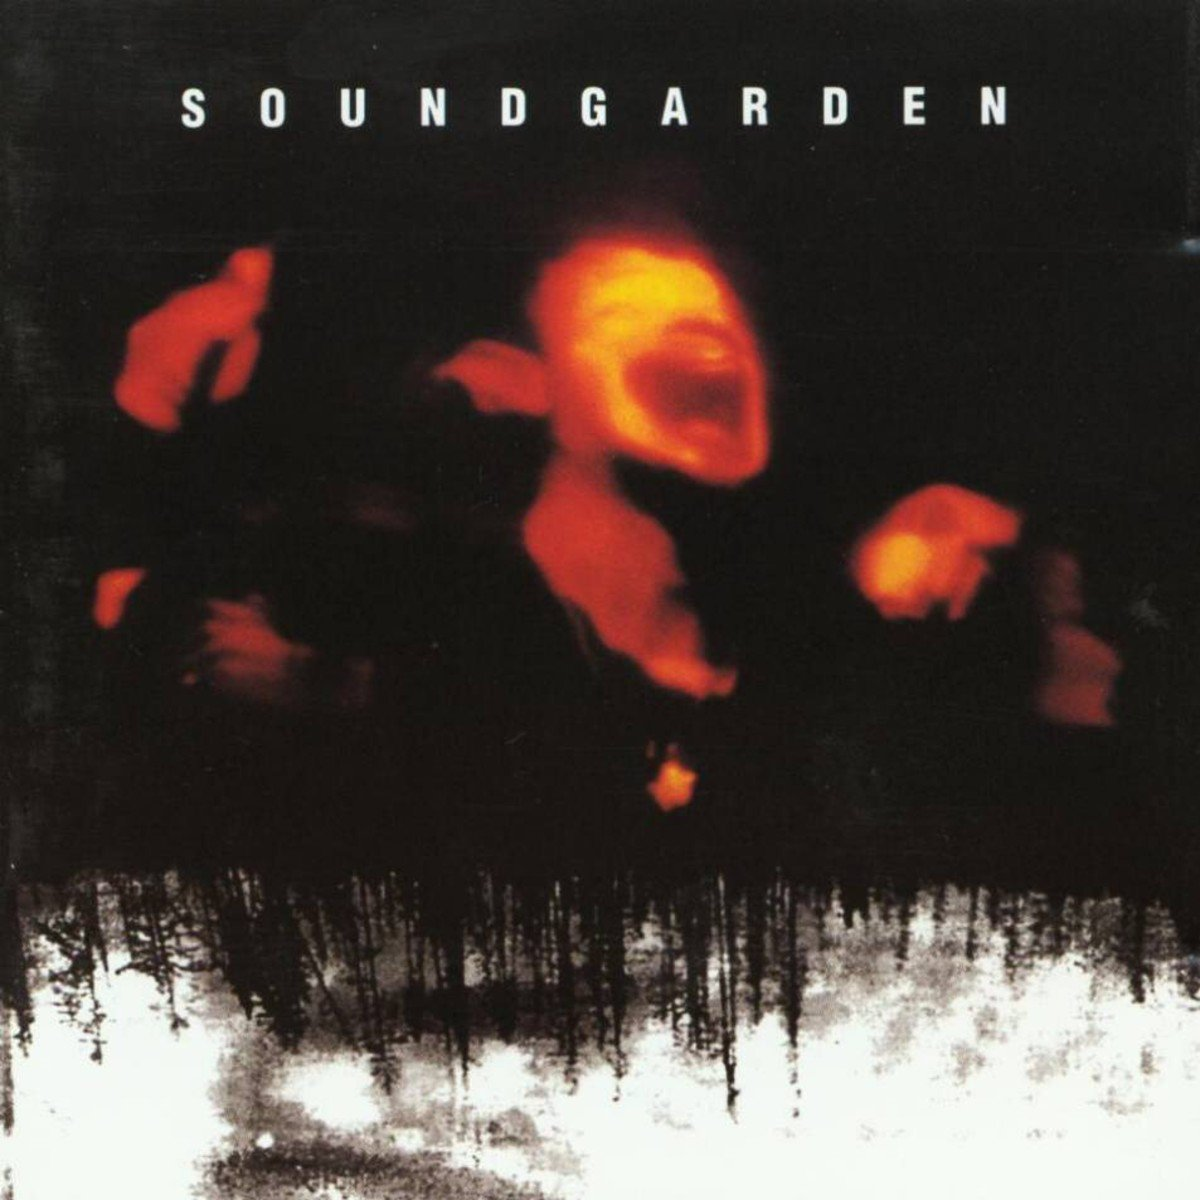 Happy 25th birthday #Superunknown!  Pre-order your limited-edition colored vinyl from our Album-of-the-Month Club now at https://SoundOfVinyl.lnk.to/Superunknown. #Superunknown25 #Soundgarden35